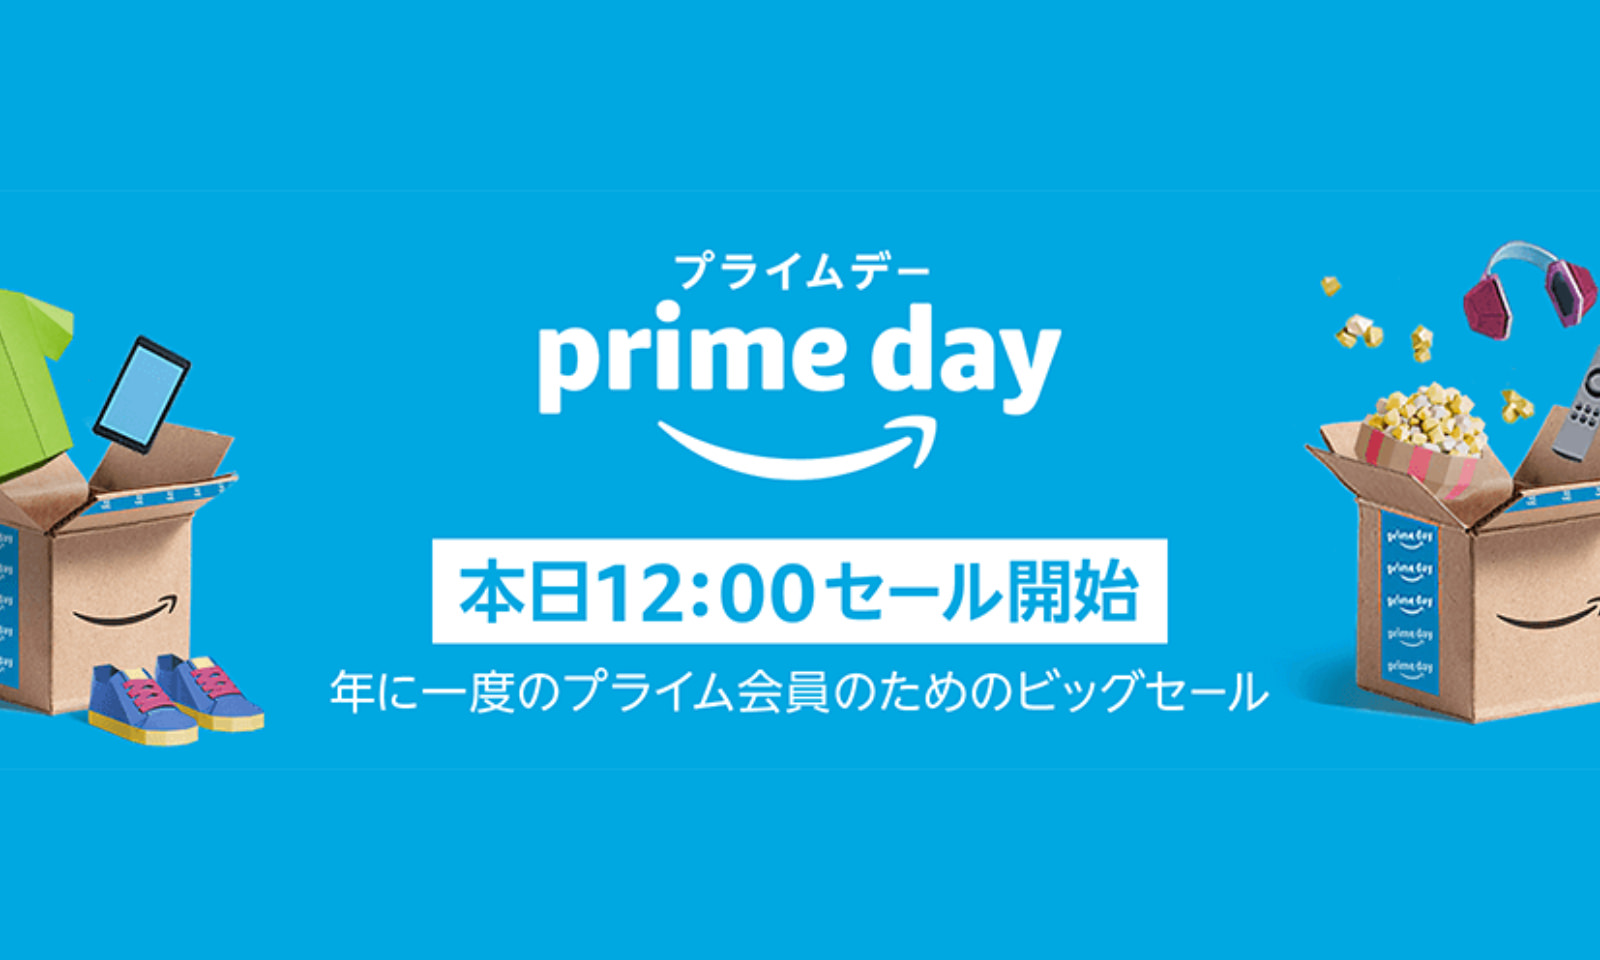 PrimeDay Sale Starting Today